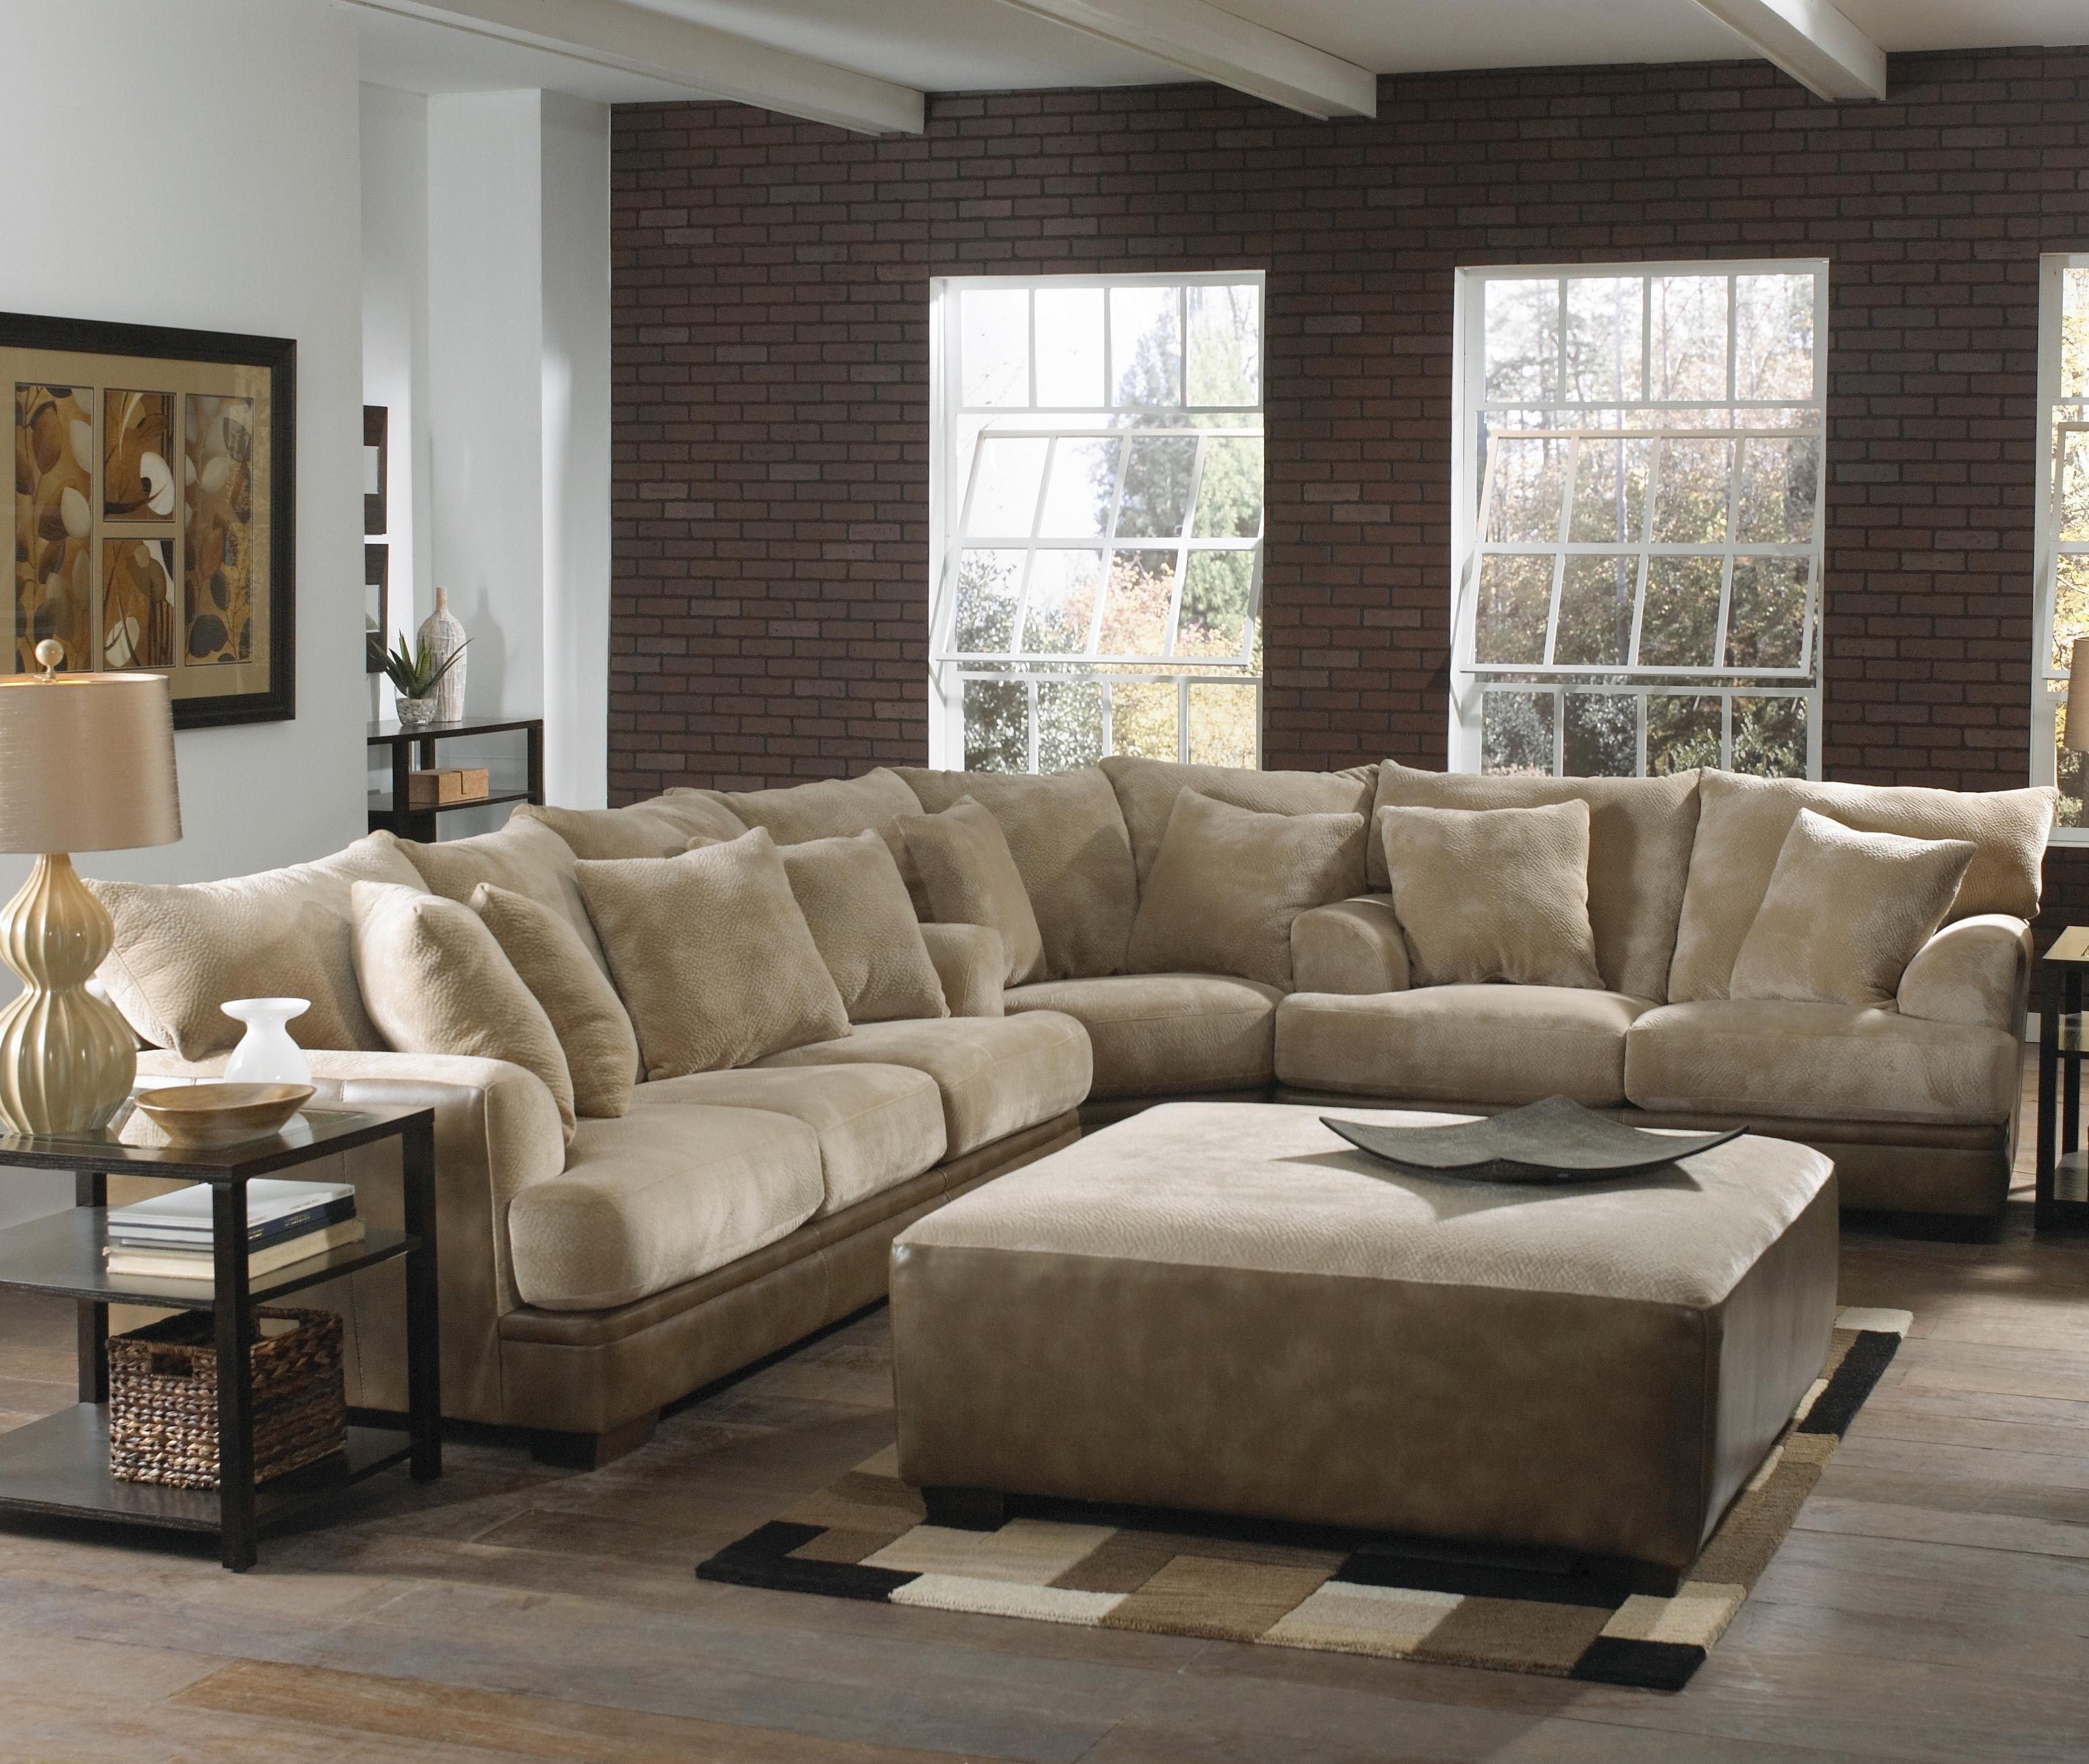 Pinsofascouch On Living Room Sofa | Pinterest | Sofa, Furniture throughout Norfolk Chocolate 3 Piece Sectionals With Laf Chaise (Image 23 of 30)